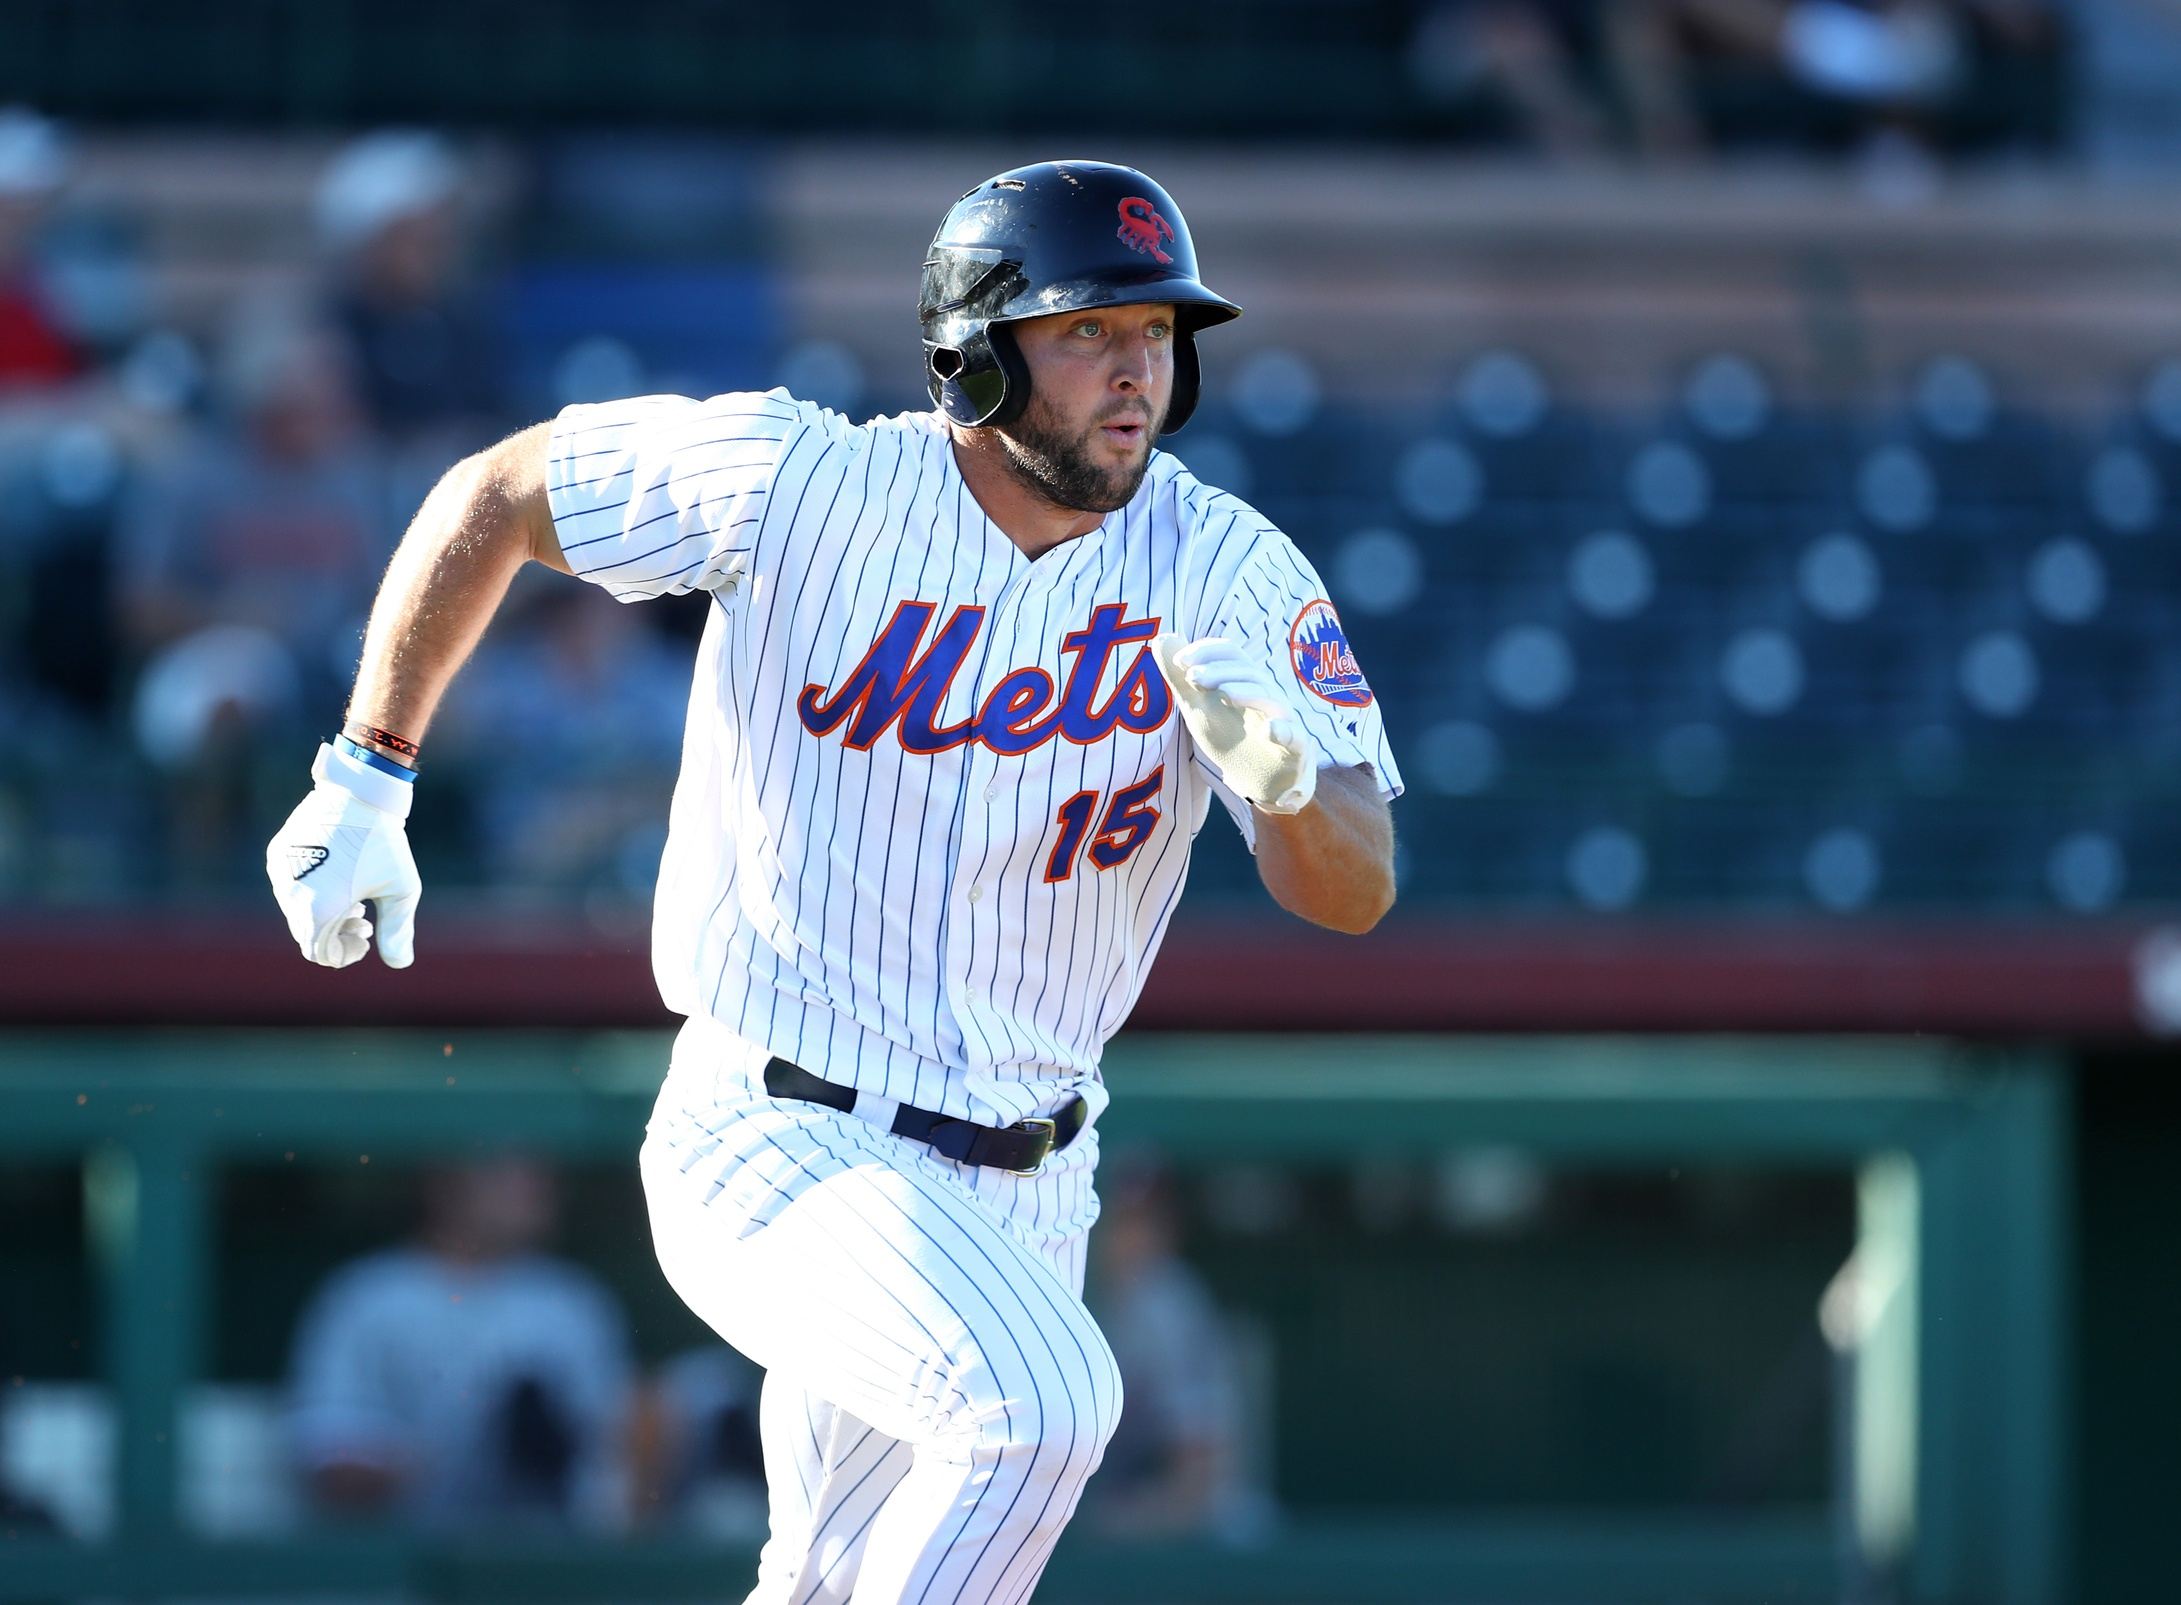 Tim Tebow makes a legitimately great jumping catch at the outfield wall